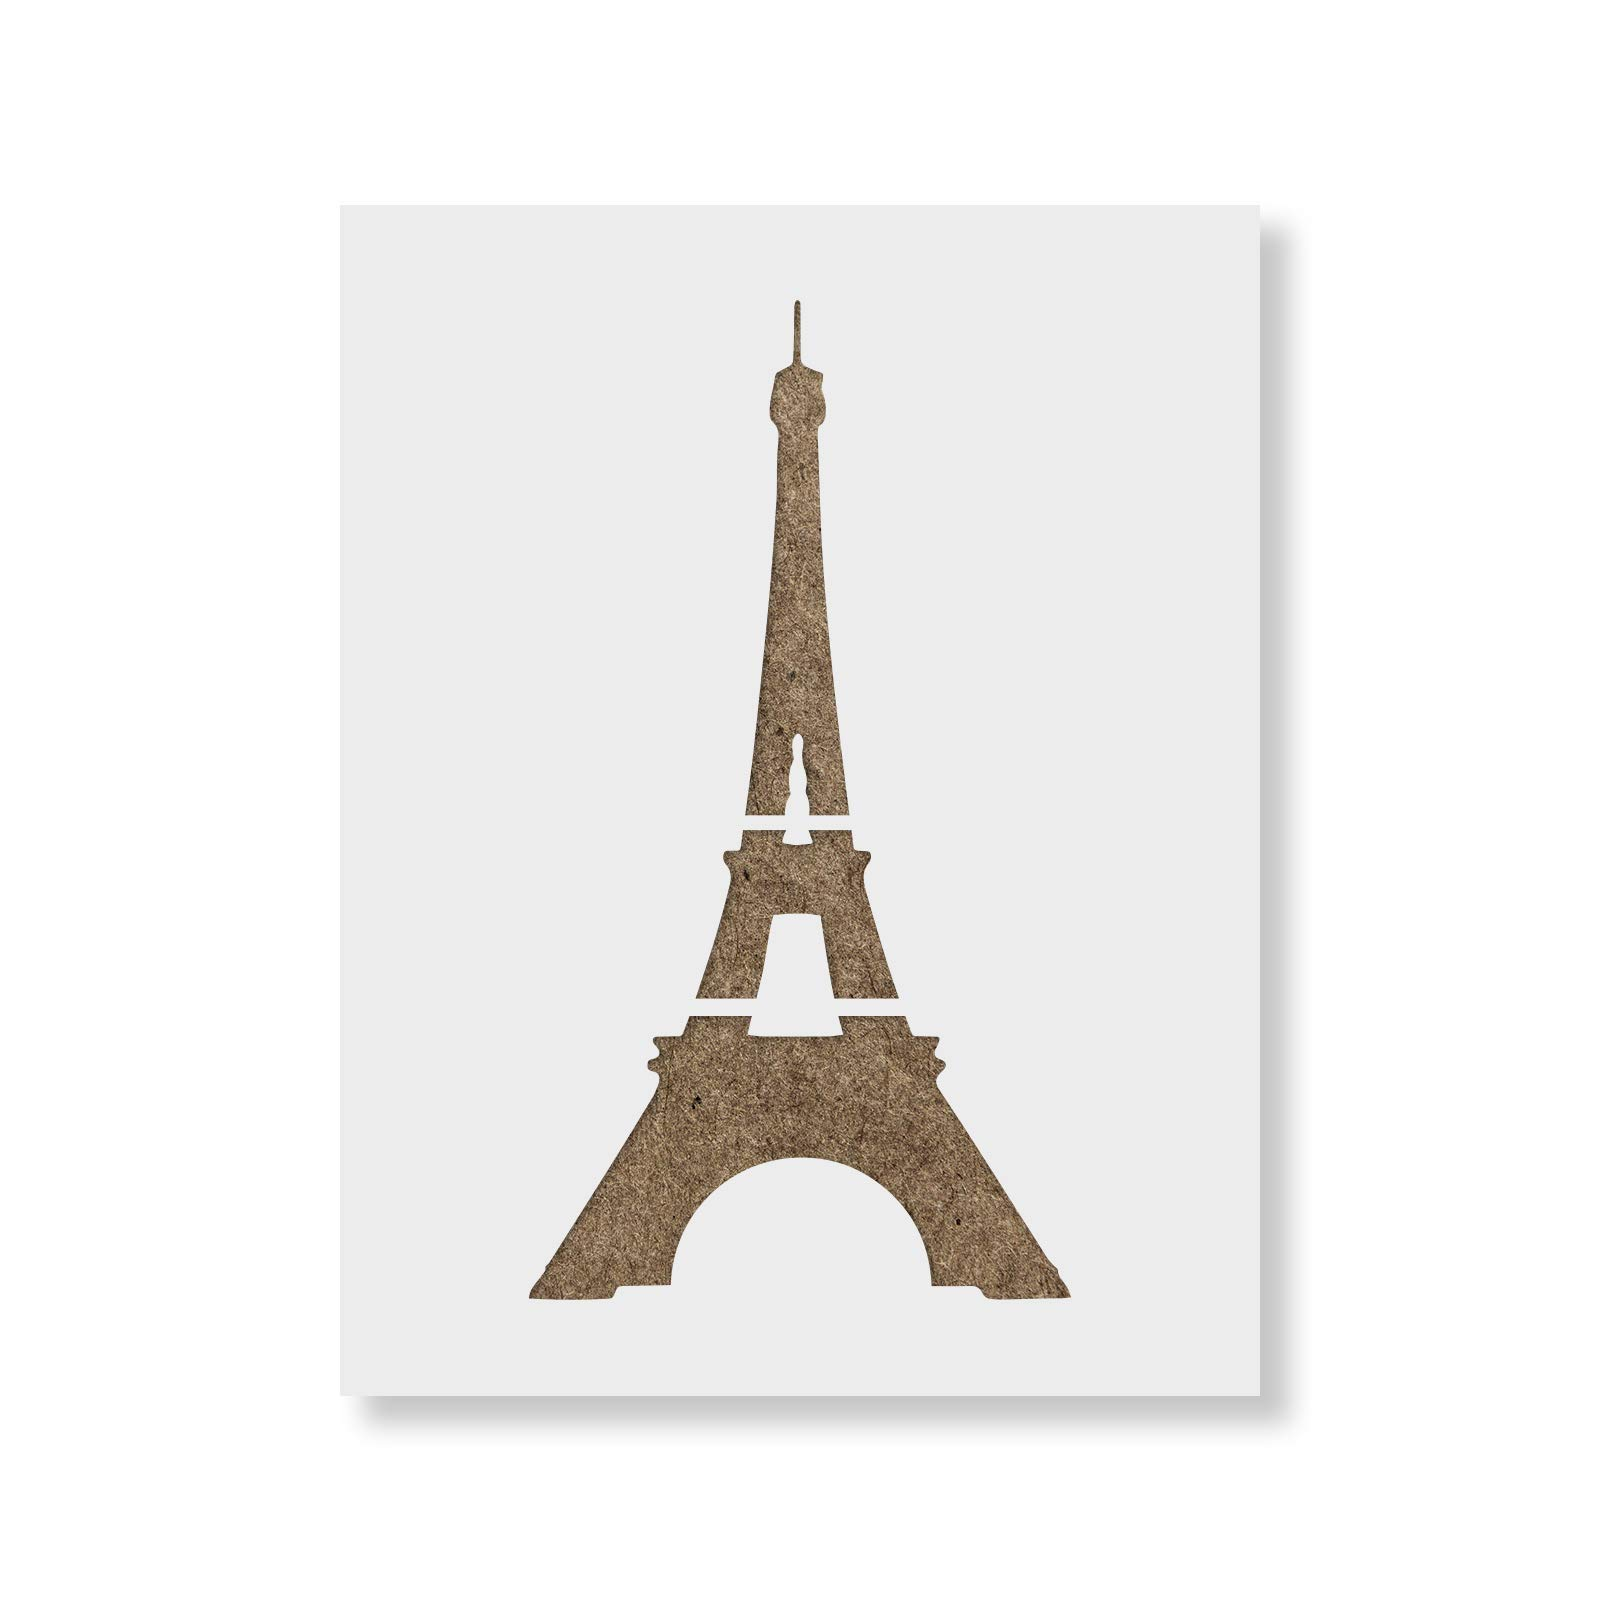 Eiffel Tower Stencil Template - Reusable Stencil with Multiple Sizes Available by Stencil Revolution